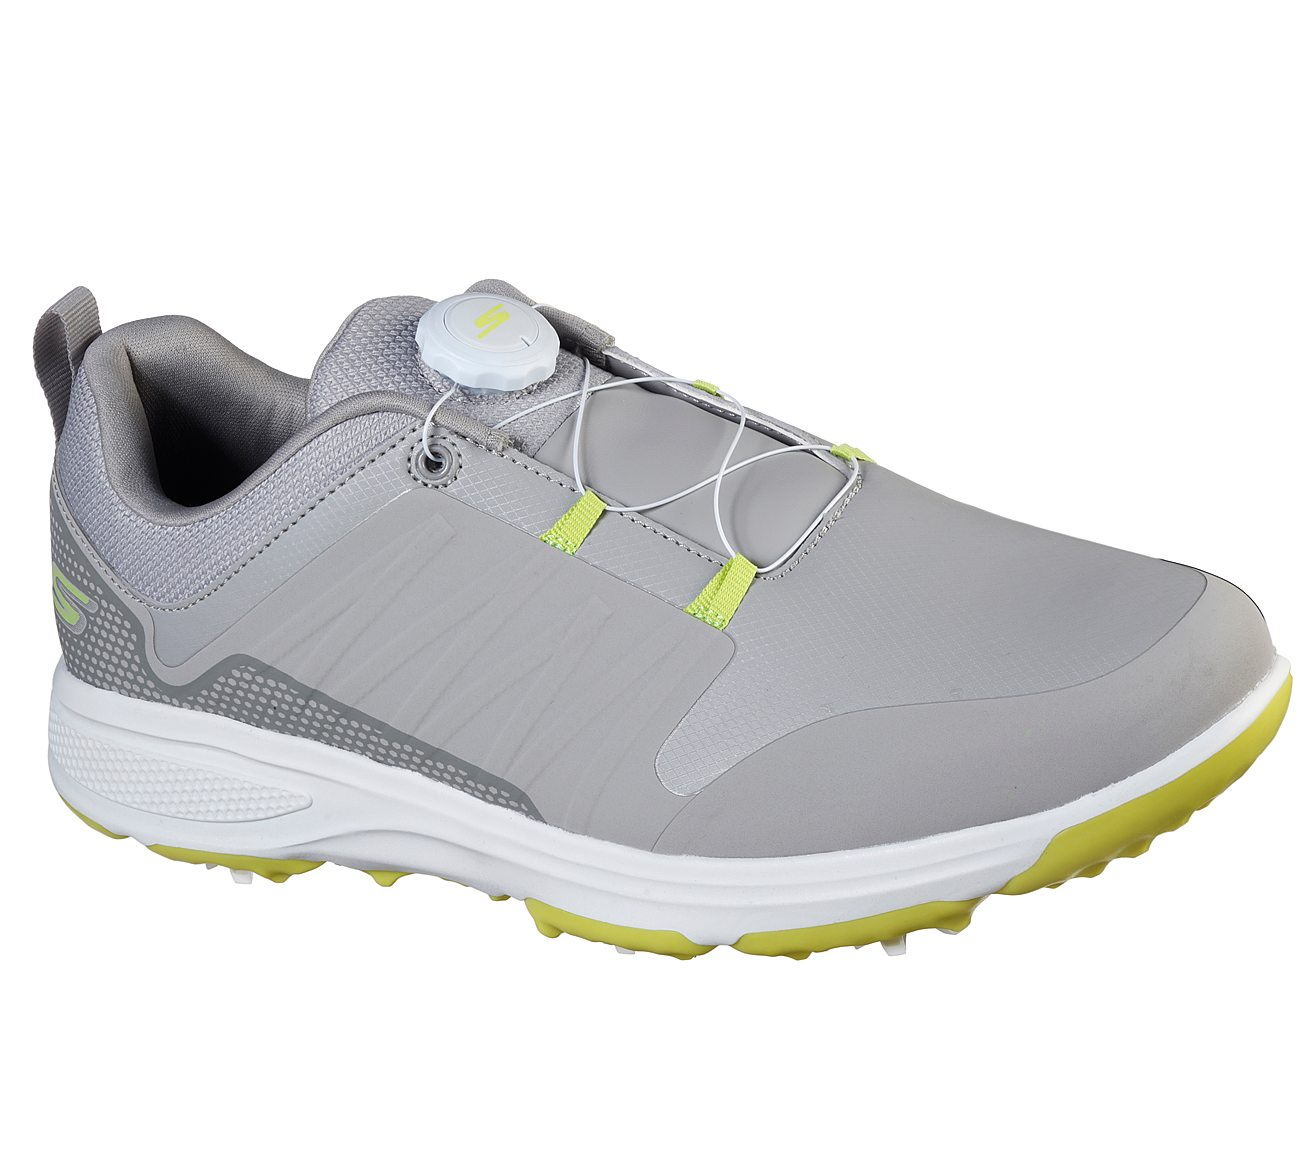 Skechers Men's Go Gole Torque Twist Grey/Lime Golf Shoe